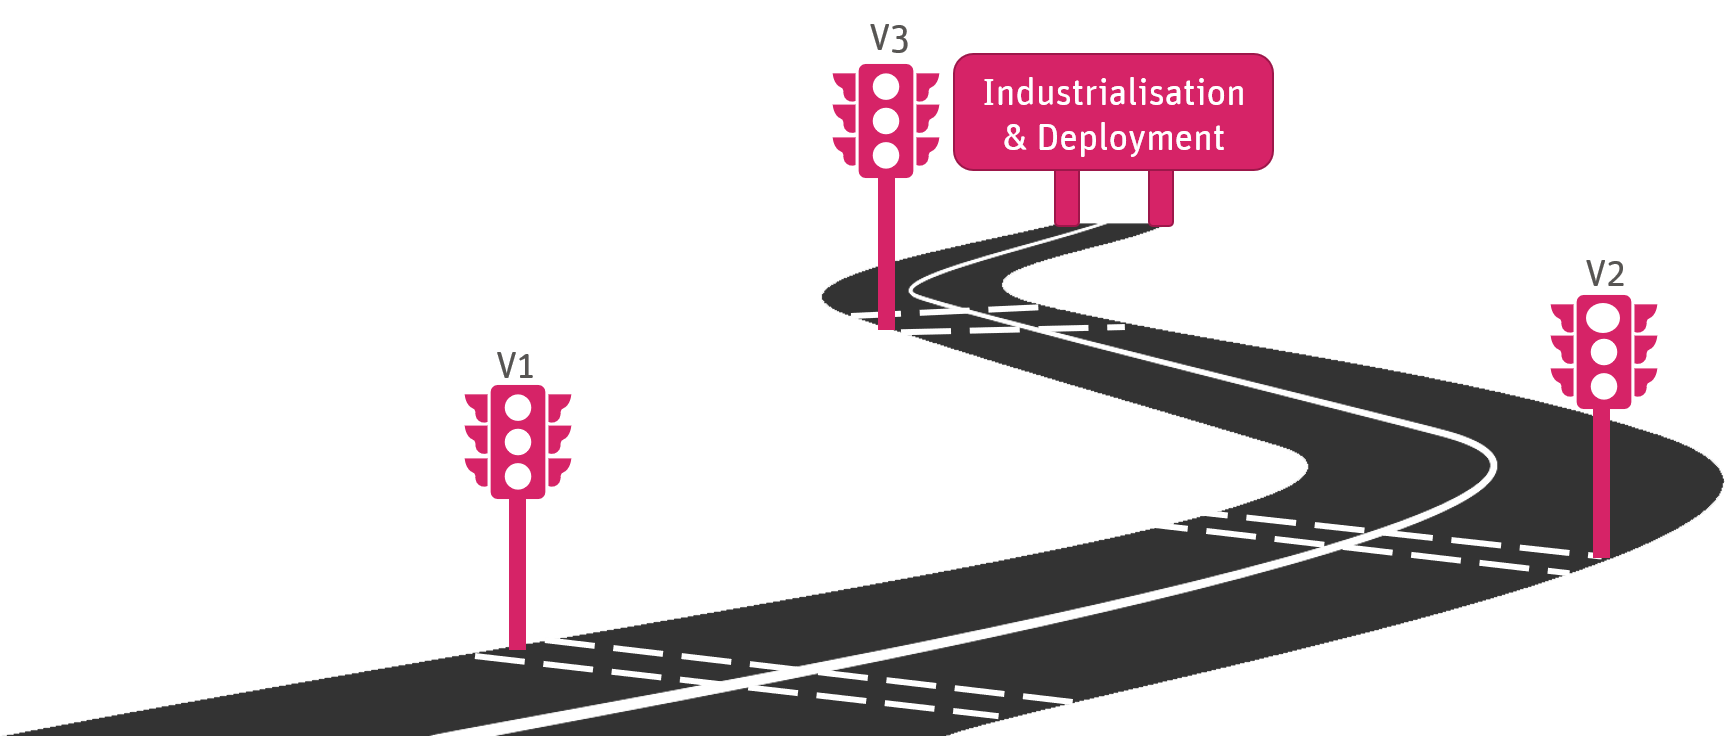 Illustration showing SESAR gate reviews leading towards industrialisation & deployment